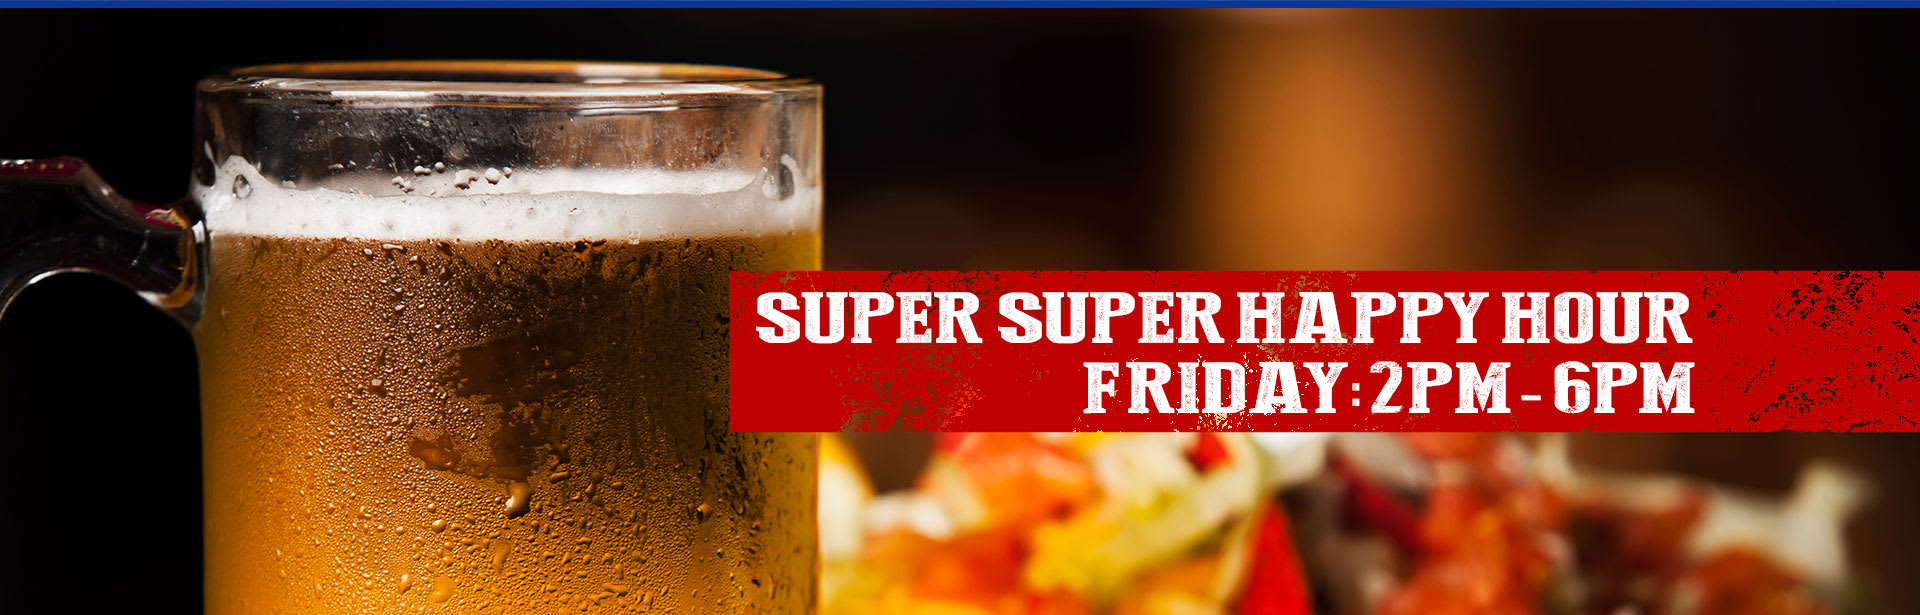 super super happy hour Friday 2pm - 6pm